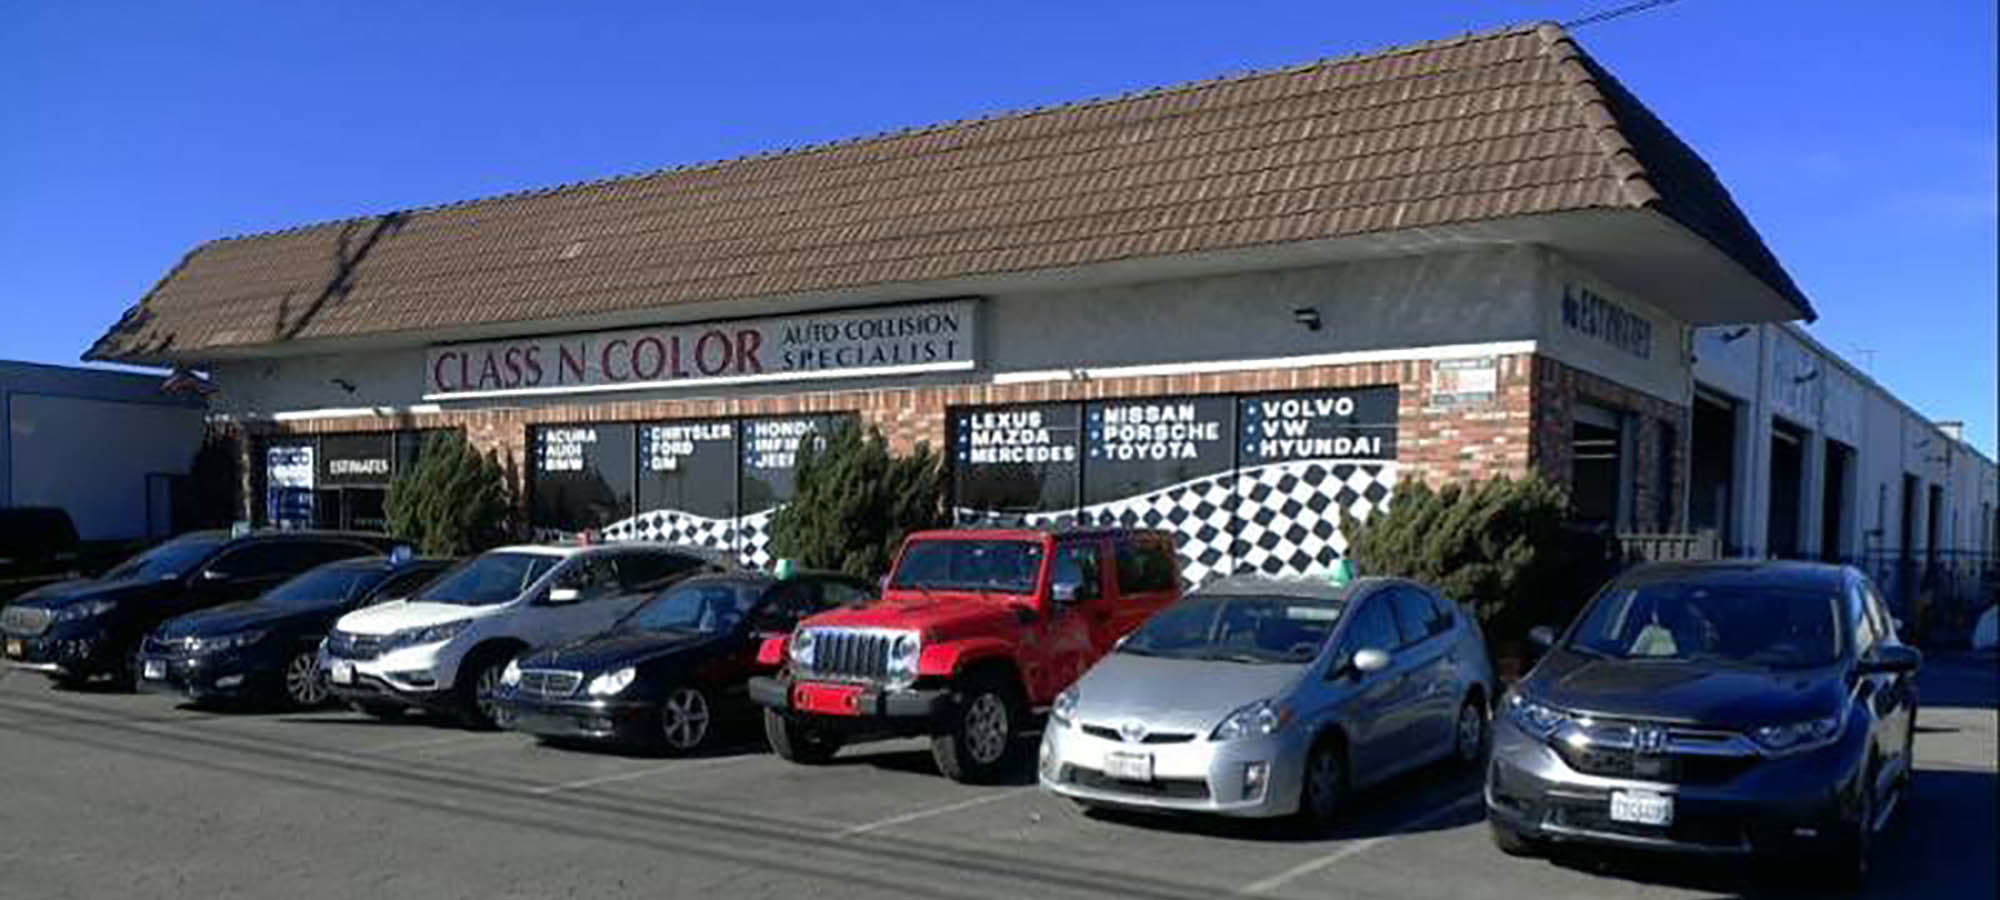 Class N Color Auto Collision - Auto Body Specialists Los Angeles CA